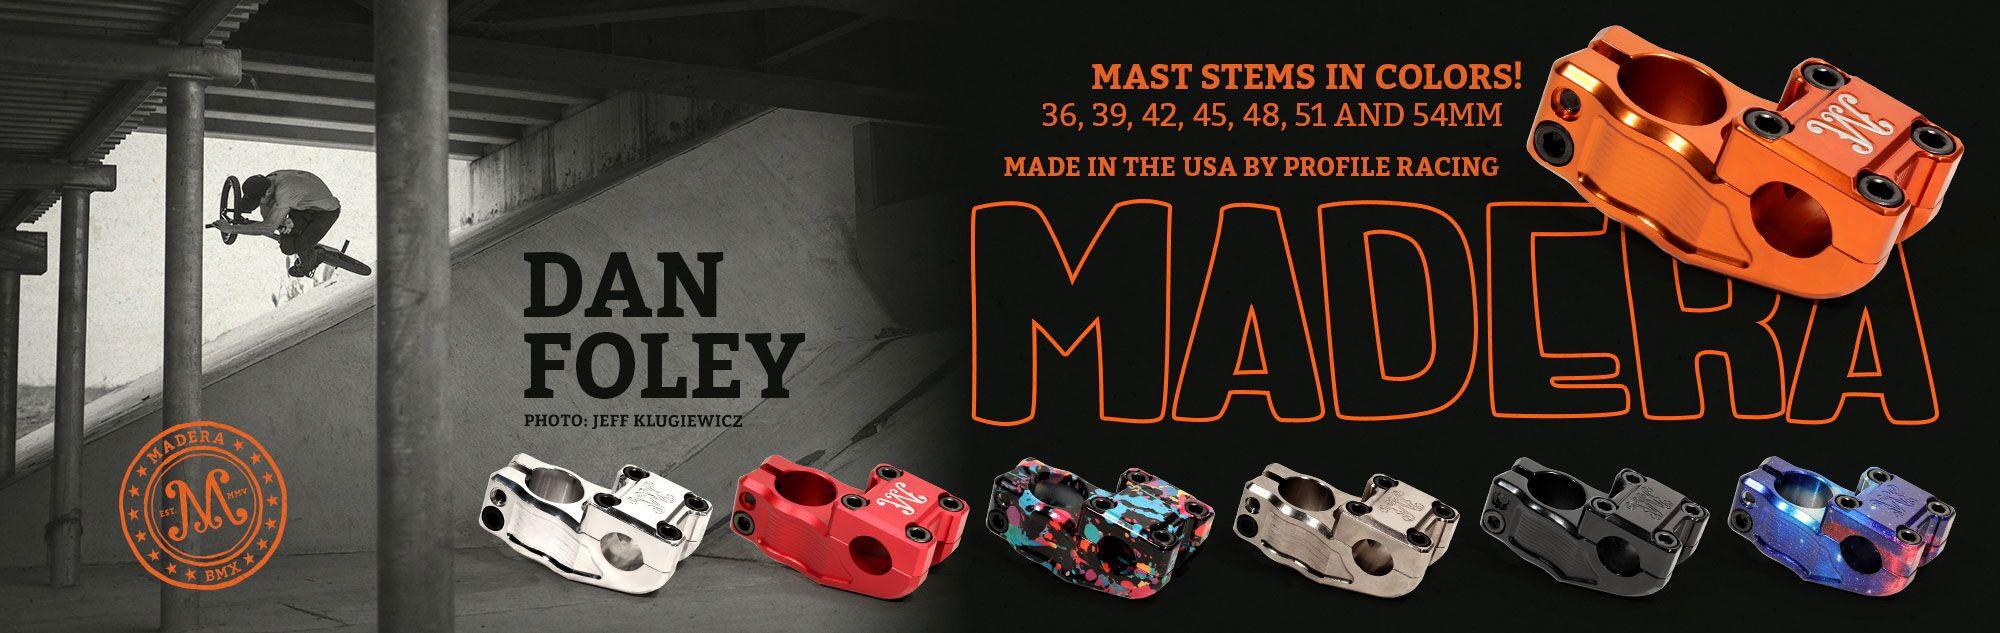 Madera BMX Mast Stem available in many colors at Albe's BMX